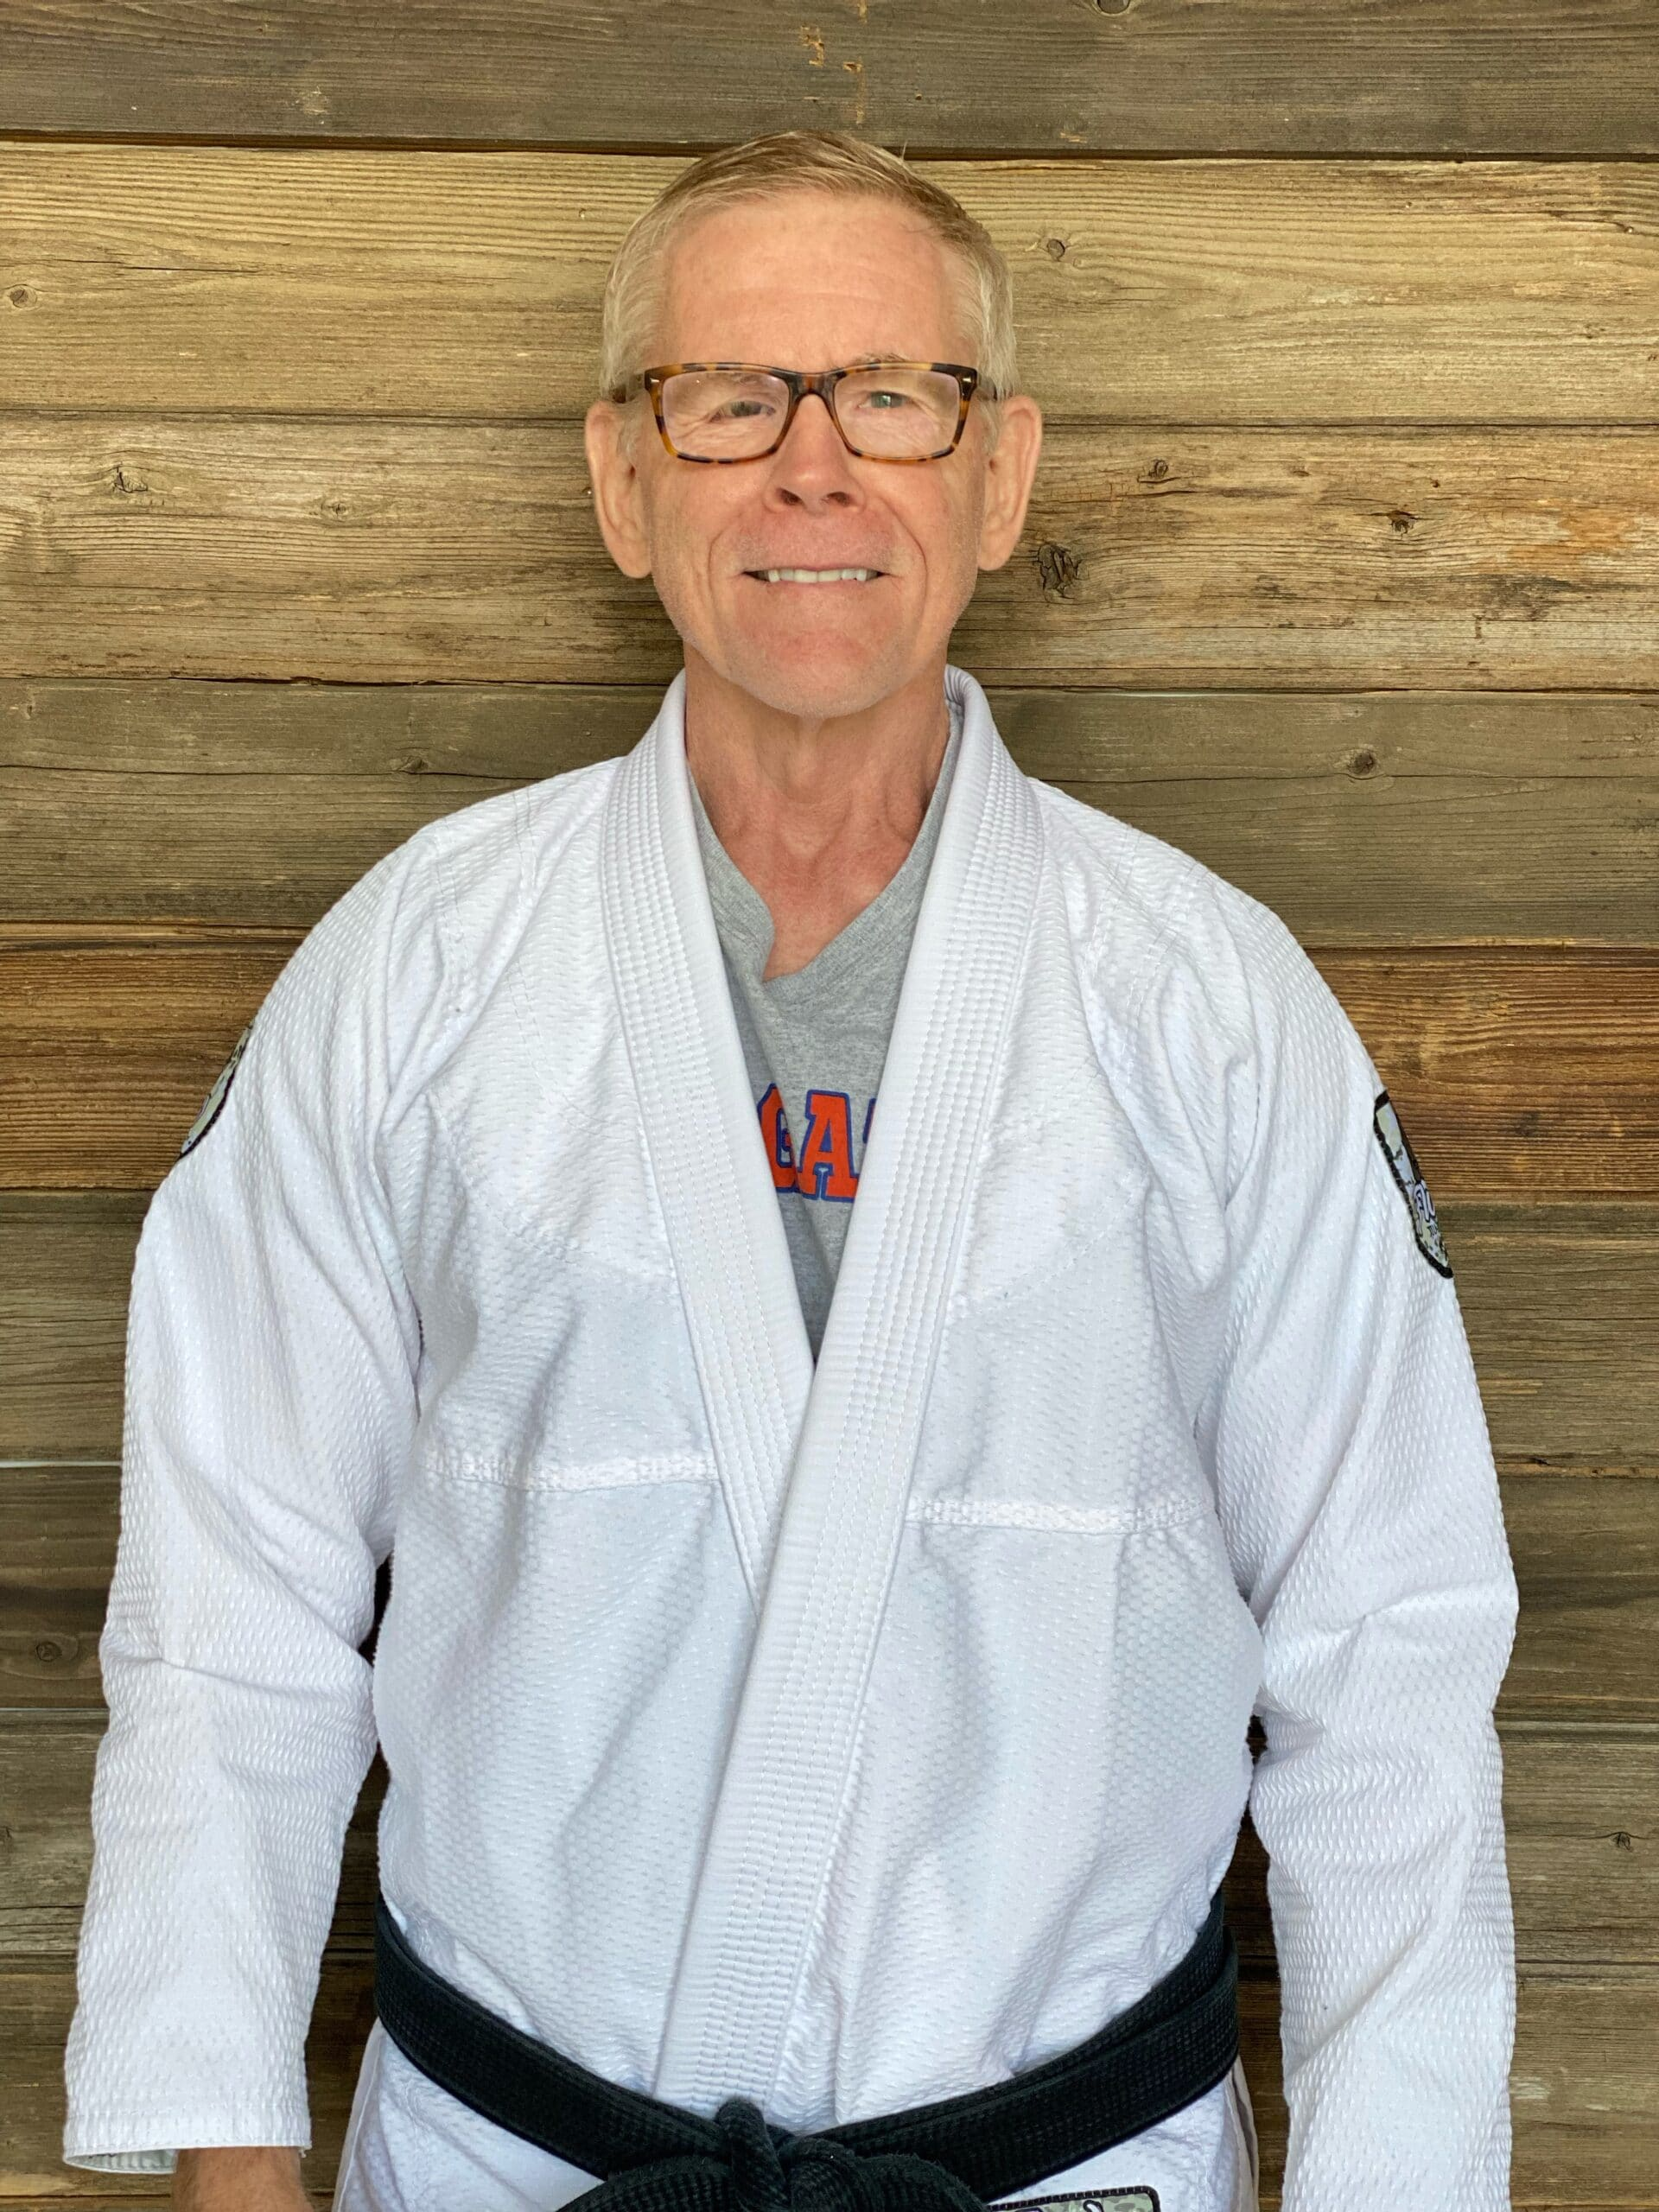 Professor Doug Fornberg posing for a picture in a white Jiu-Jitsu gi with his black belt on in Blaine MN